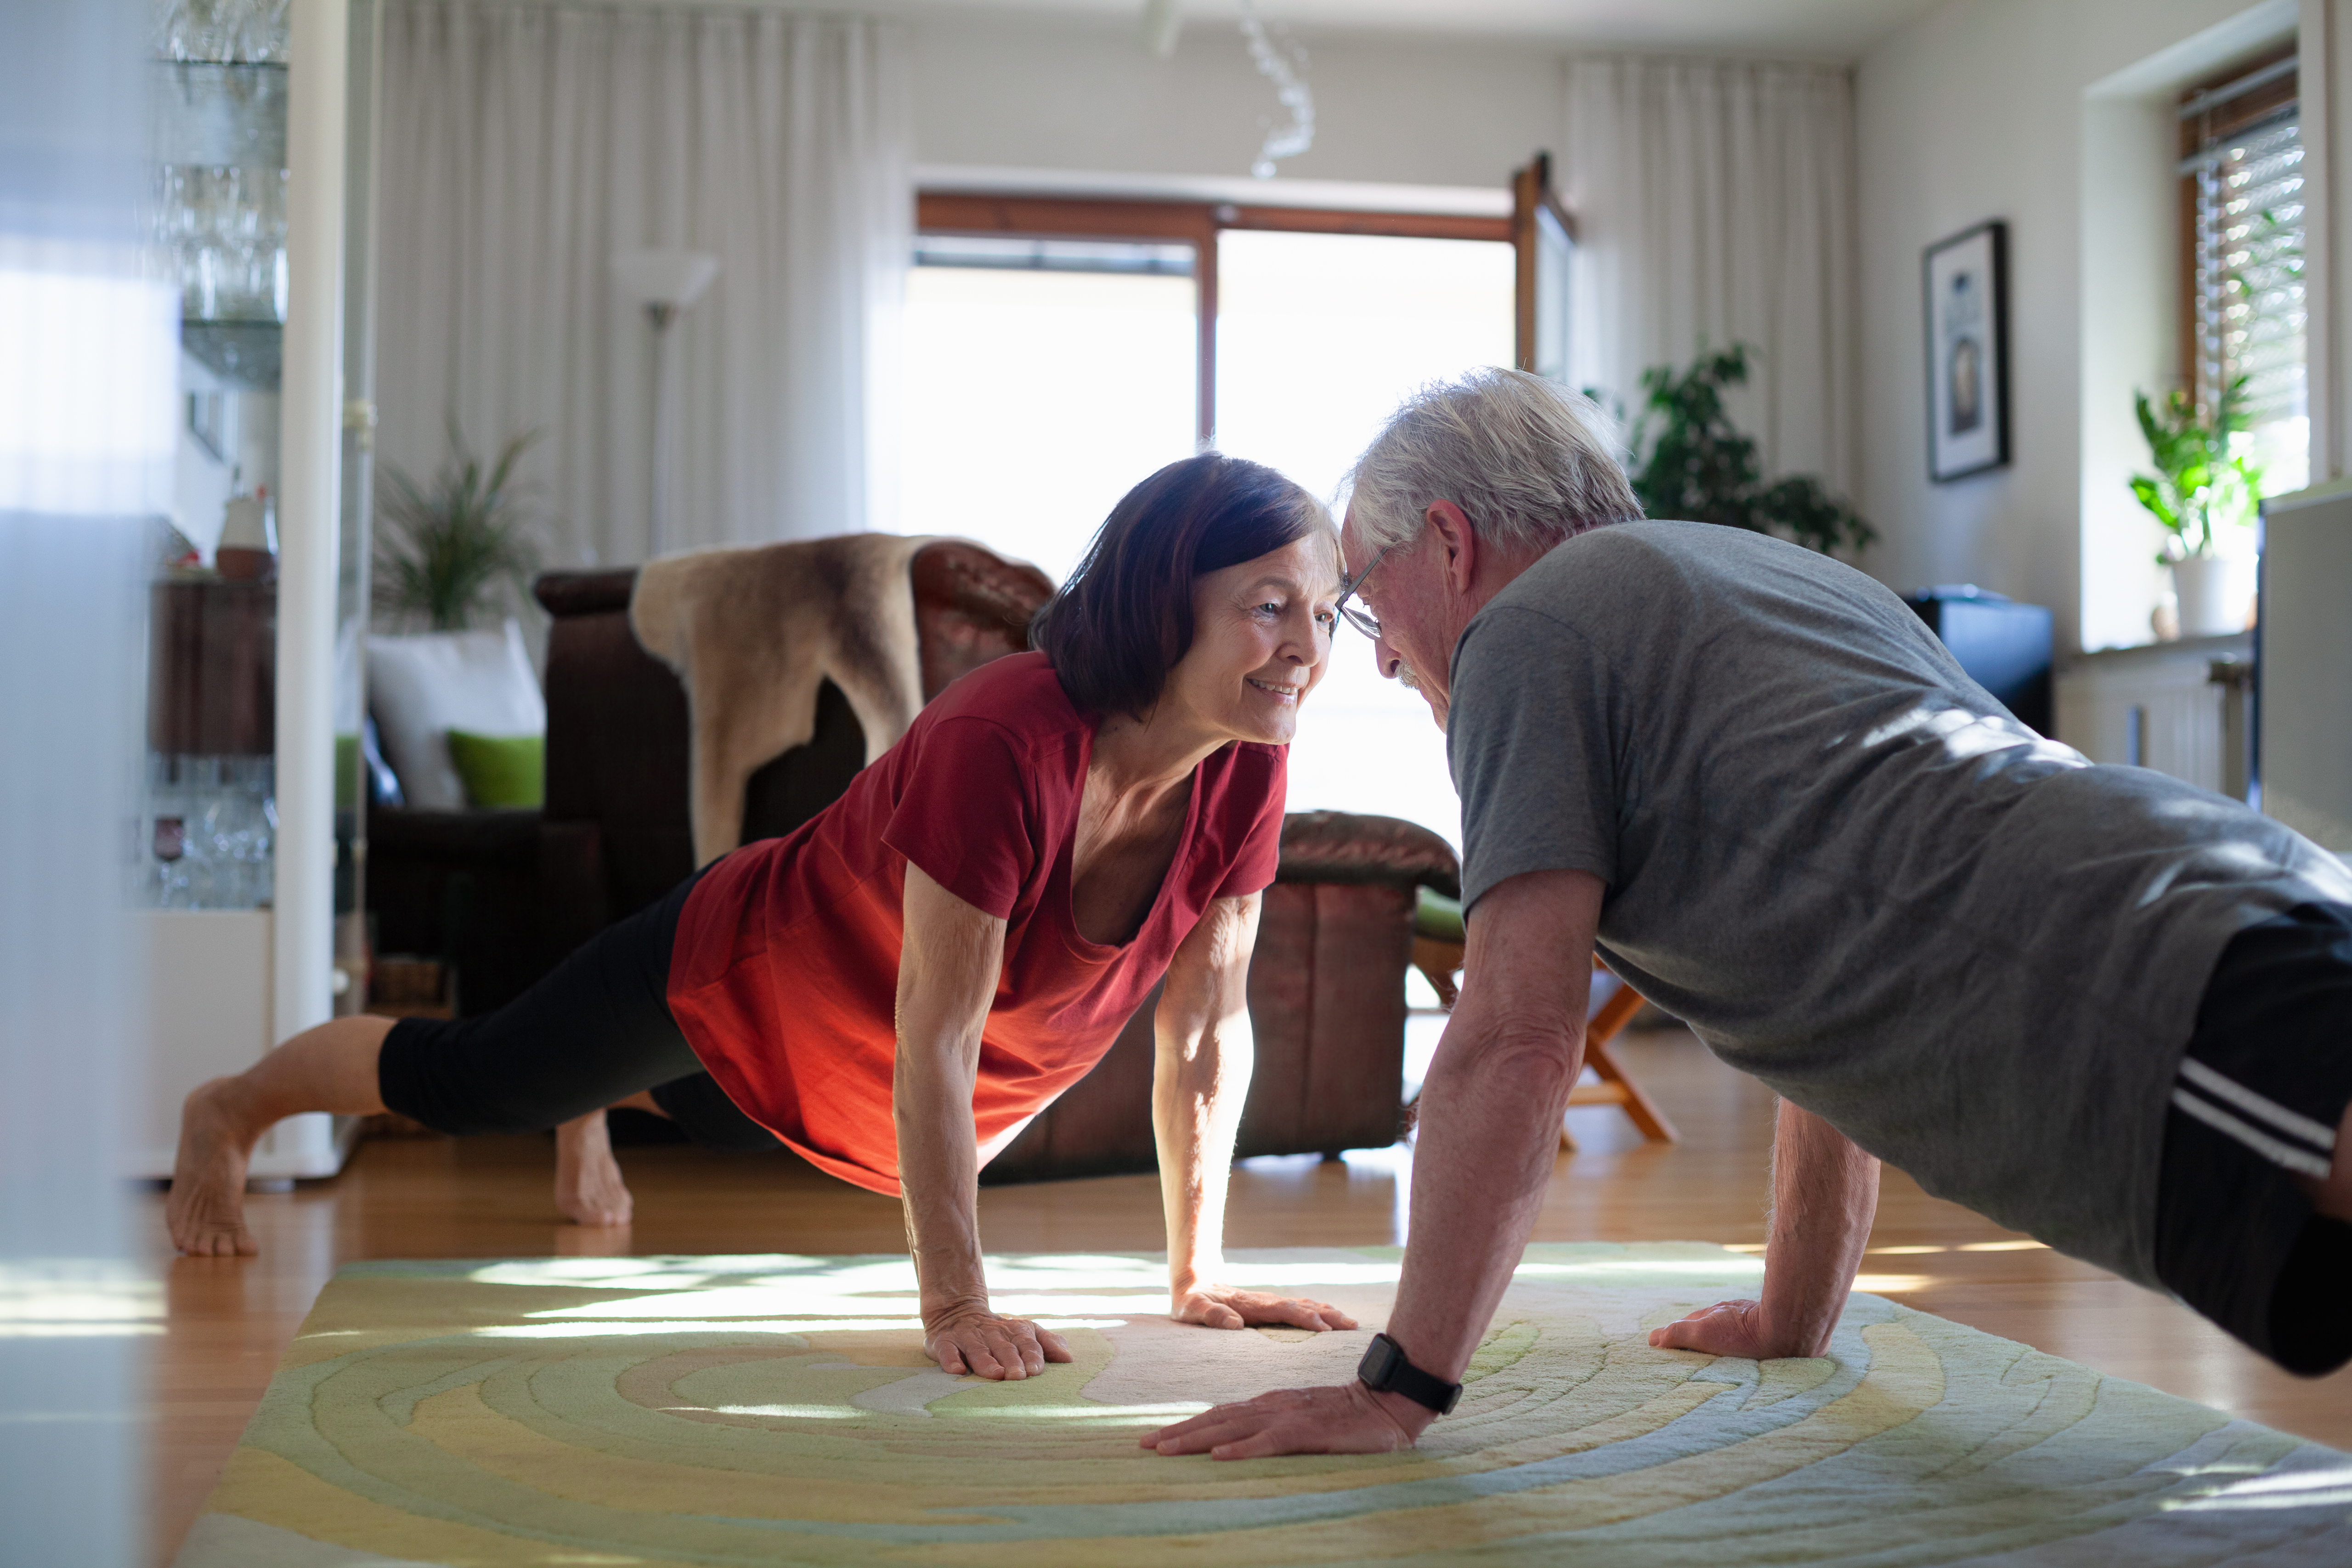 Senior couple staying home and staying fit during COVID-19 lockdown